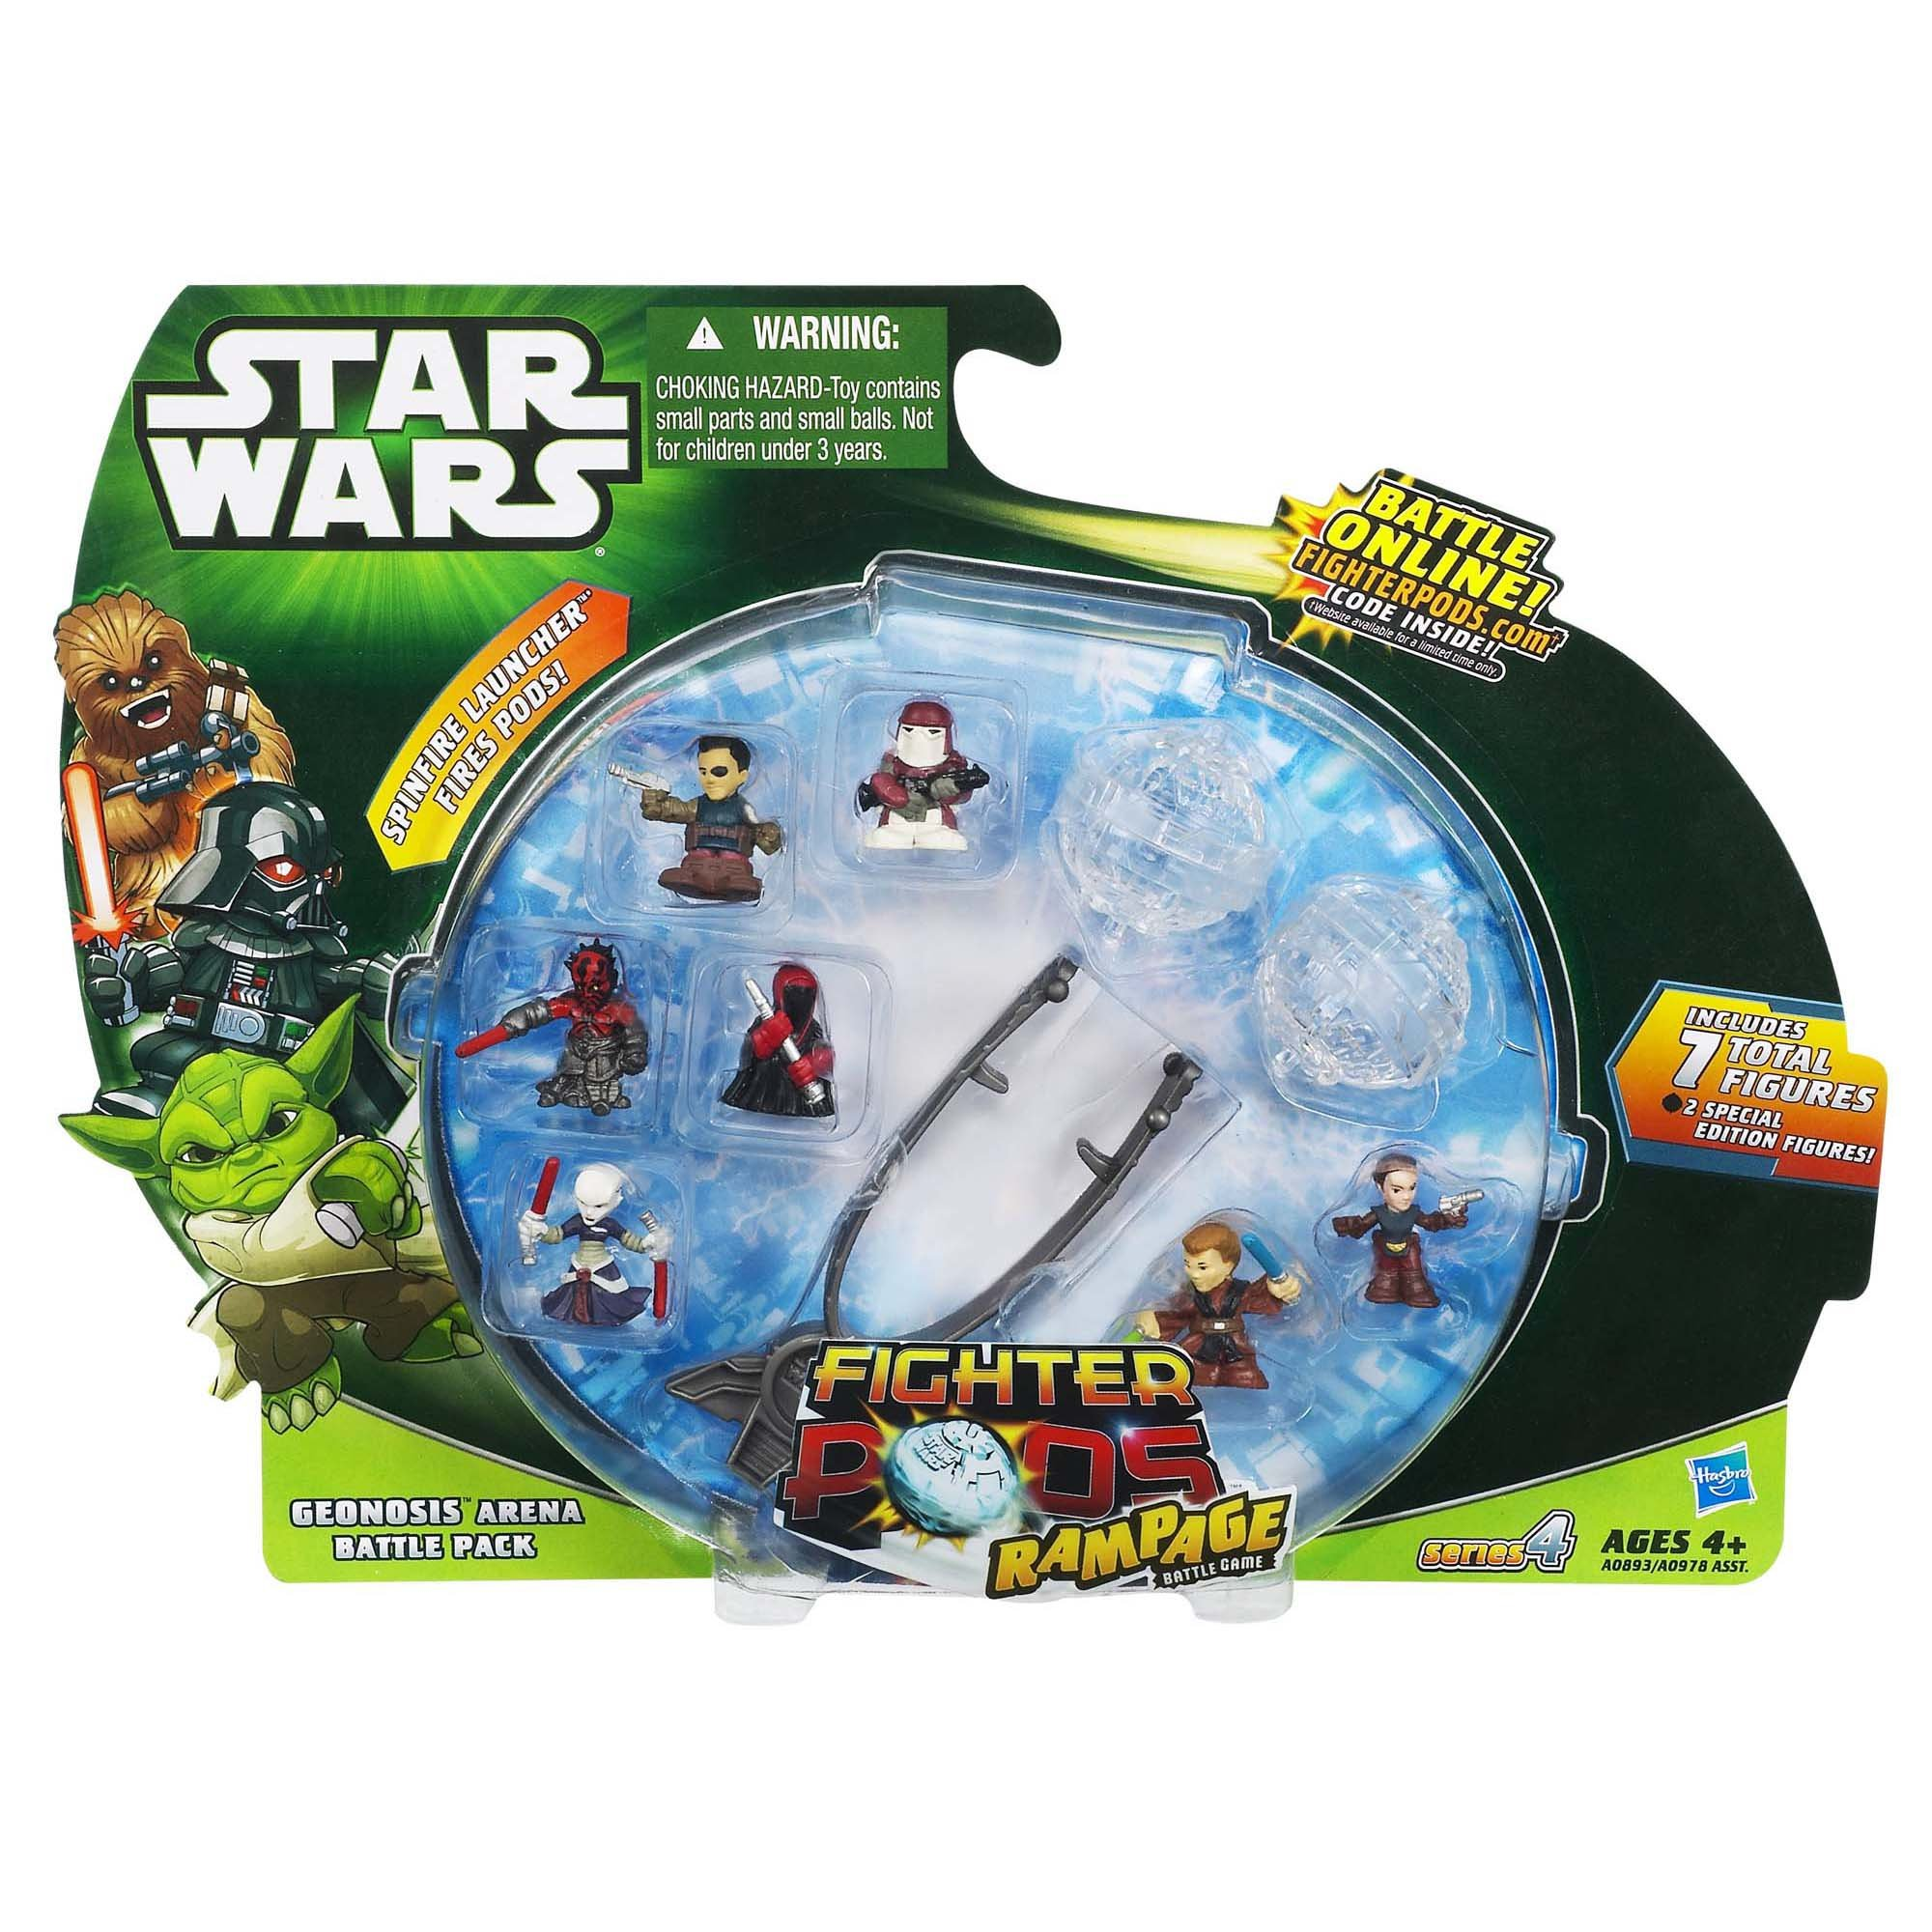 Star Wars Fighter Pods Rampage Battle Game Series 4 Geonosis Arena Battle Pack